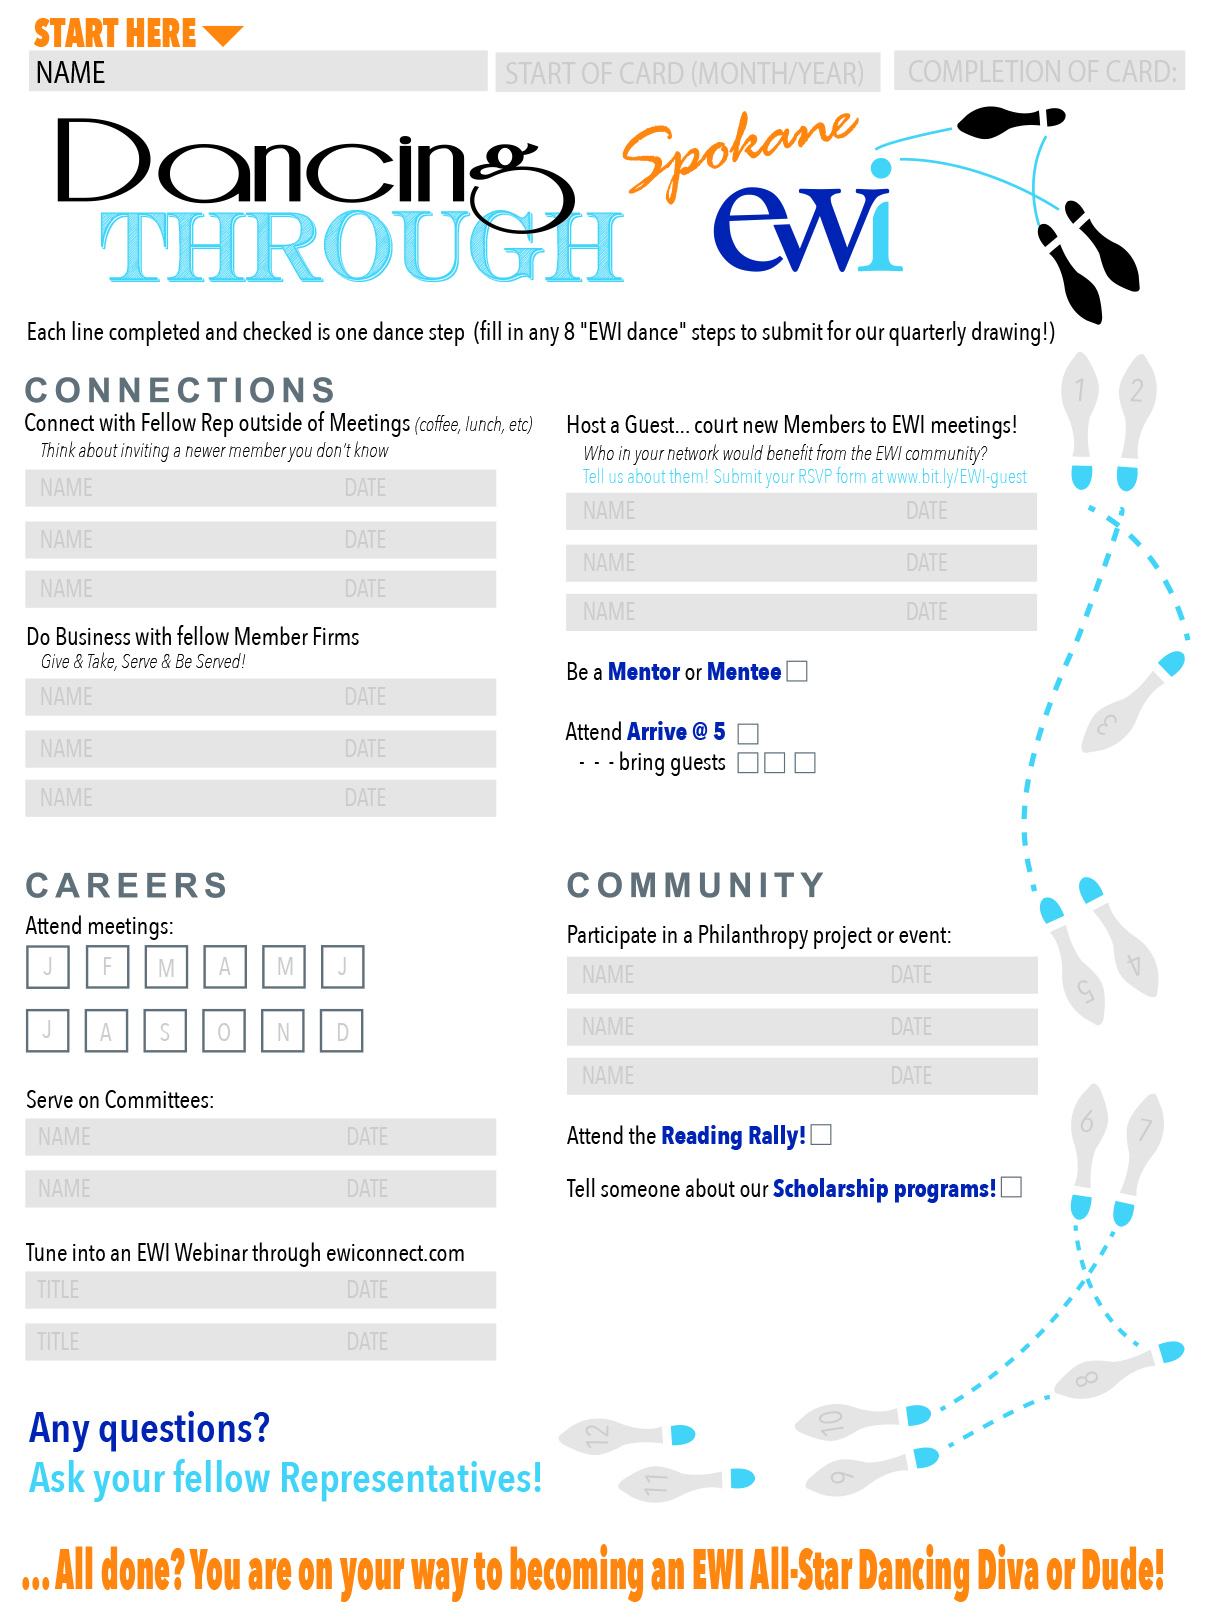 EWI Dance Card - This Dance Card is designed to help members connect with one another and get more involved with EWI.